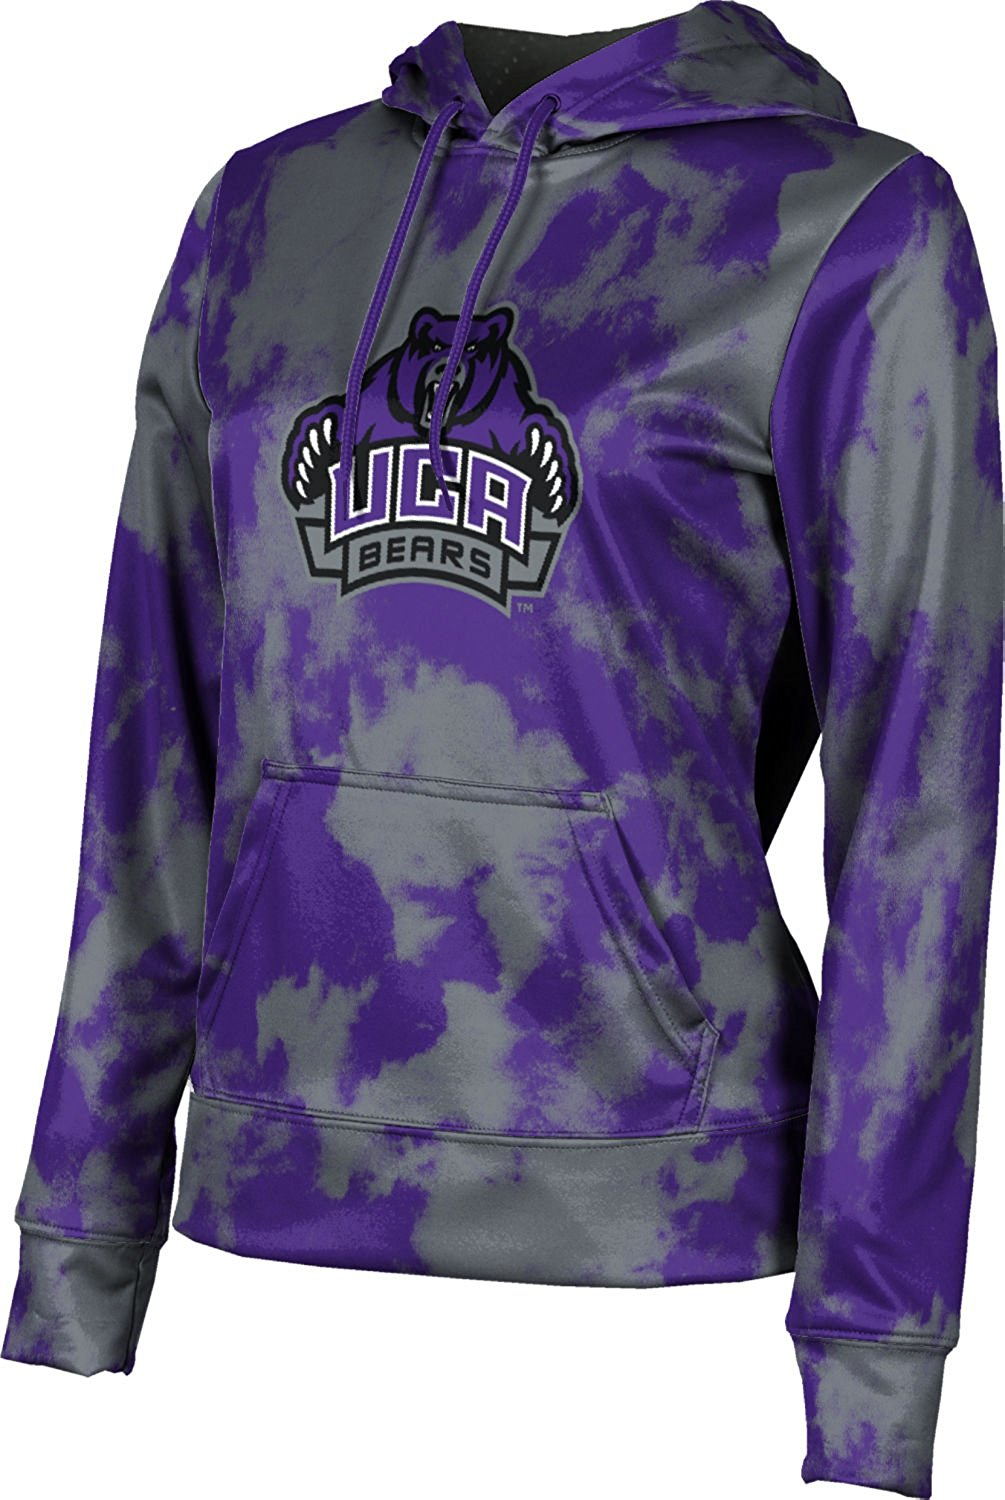 ProSphere Girls' University of Central Arkansas Grunge Pullover Hoodie